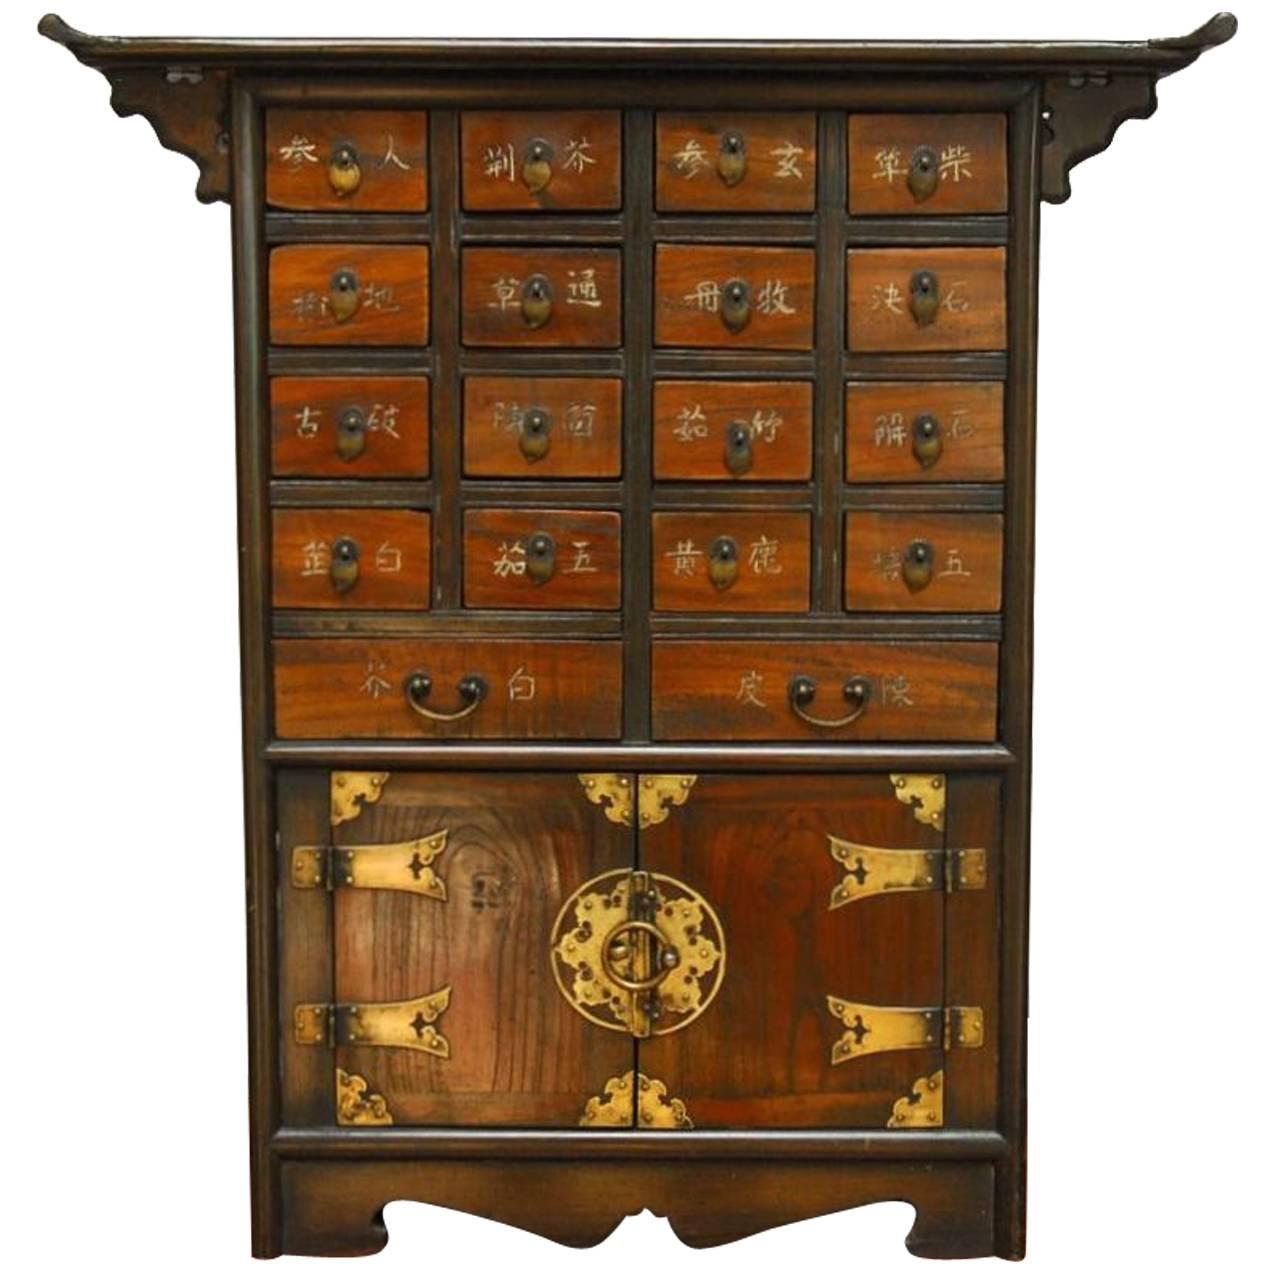 Chinese Medicine Apothecary Cabinet For Sale At 1stdibs